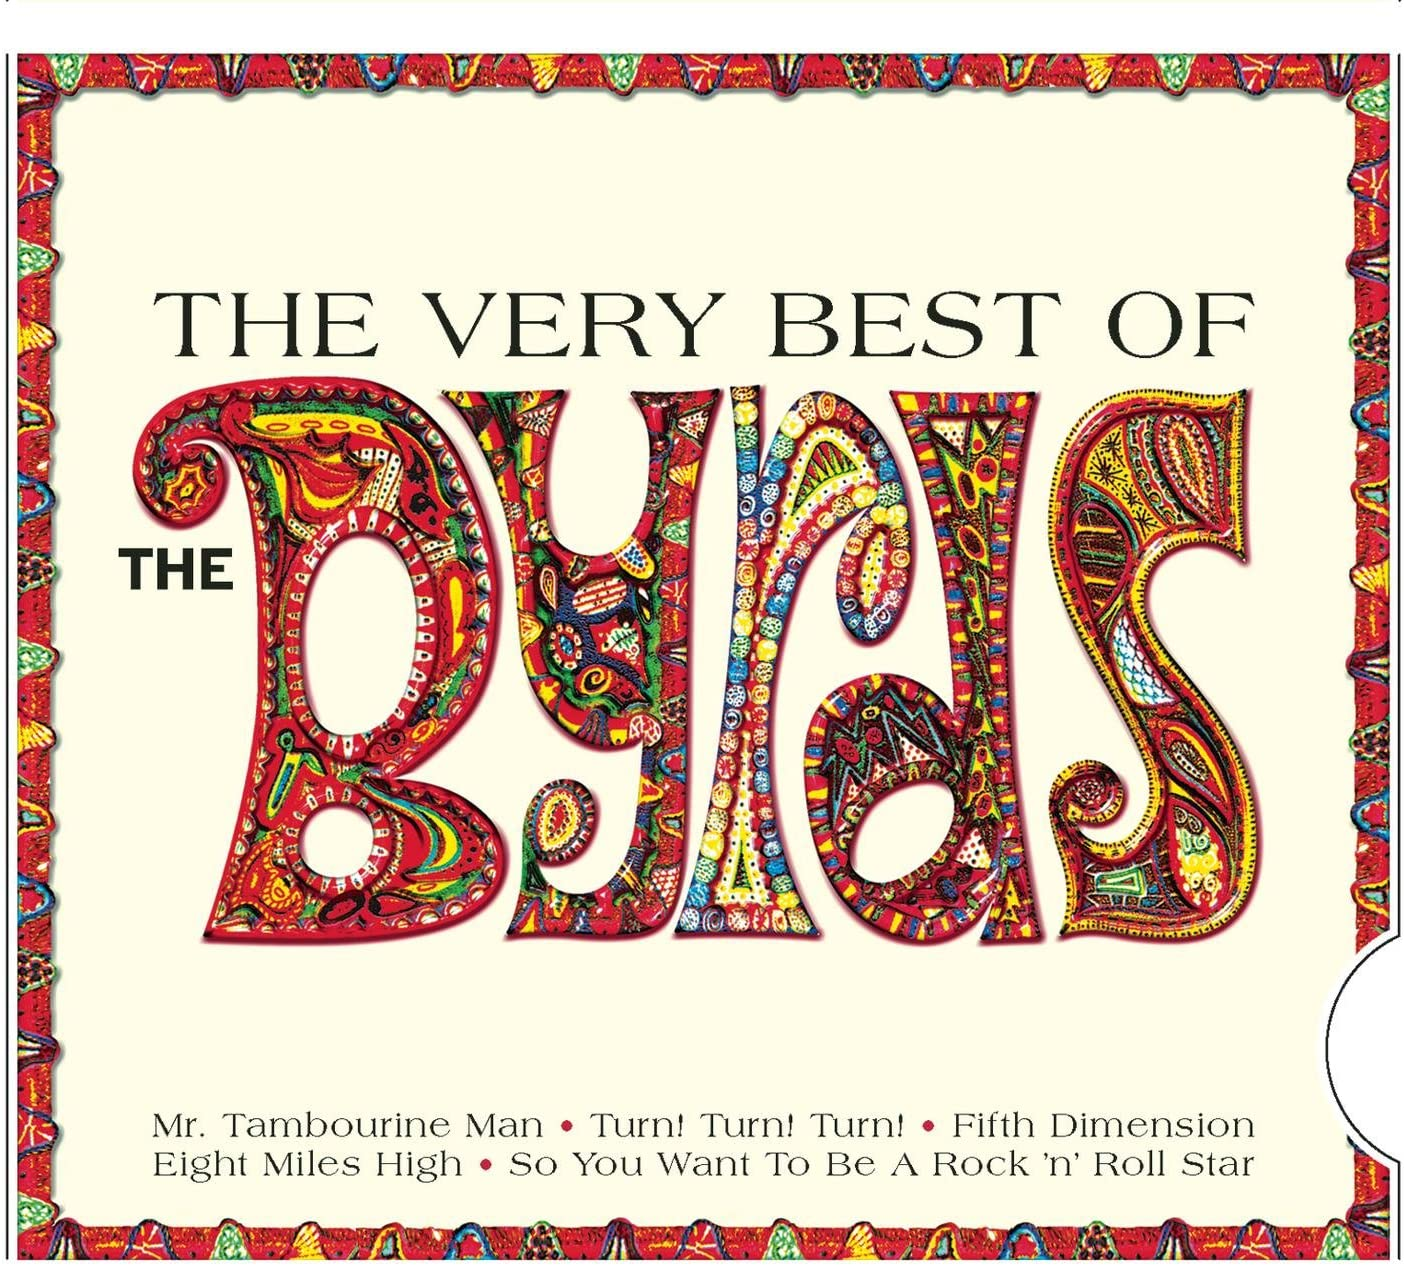 Byrds, The/The Very Best of [CD]